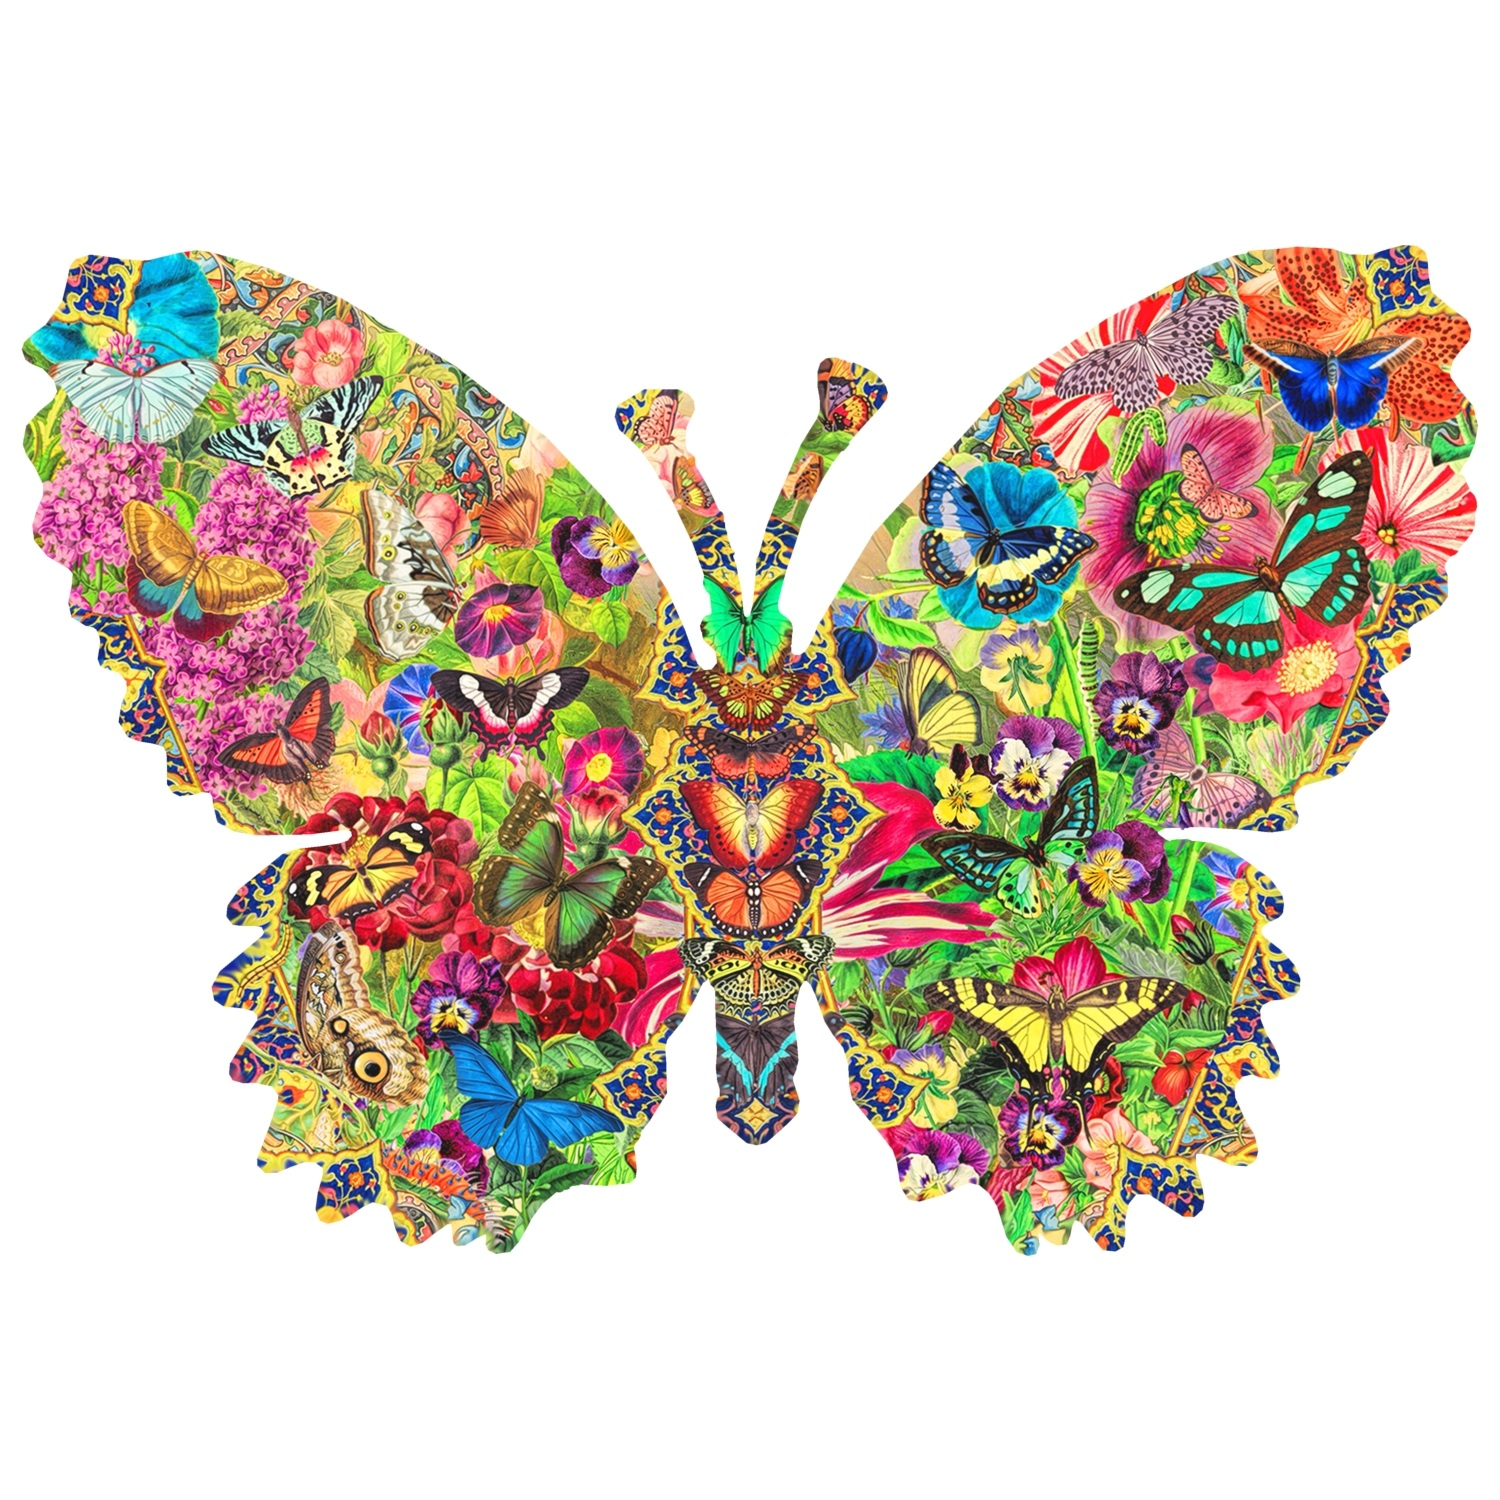 Wentworth Butterfly Wooden Jigsaw Puzzle